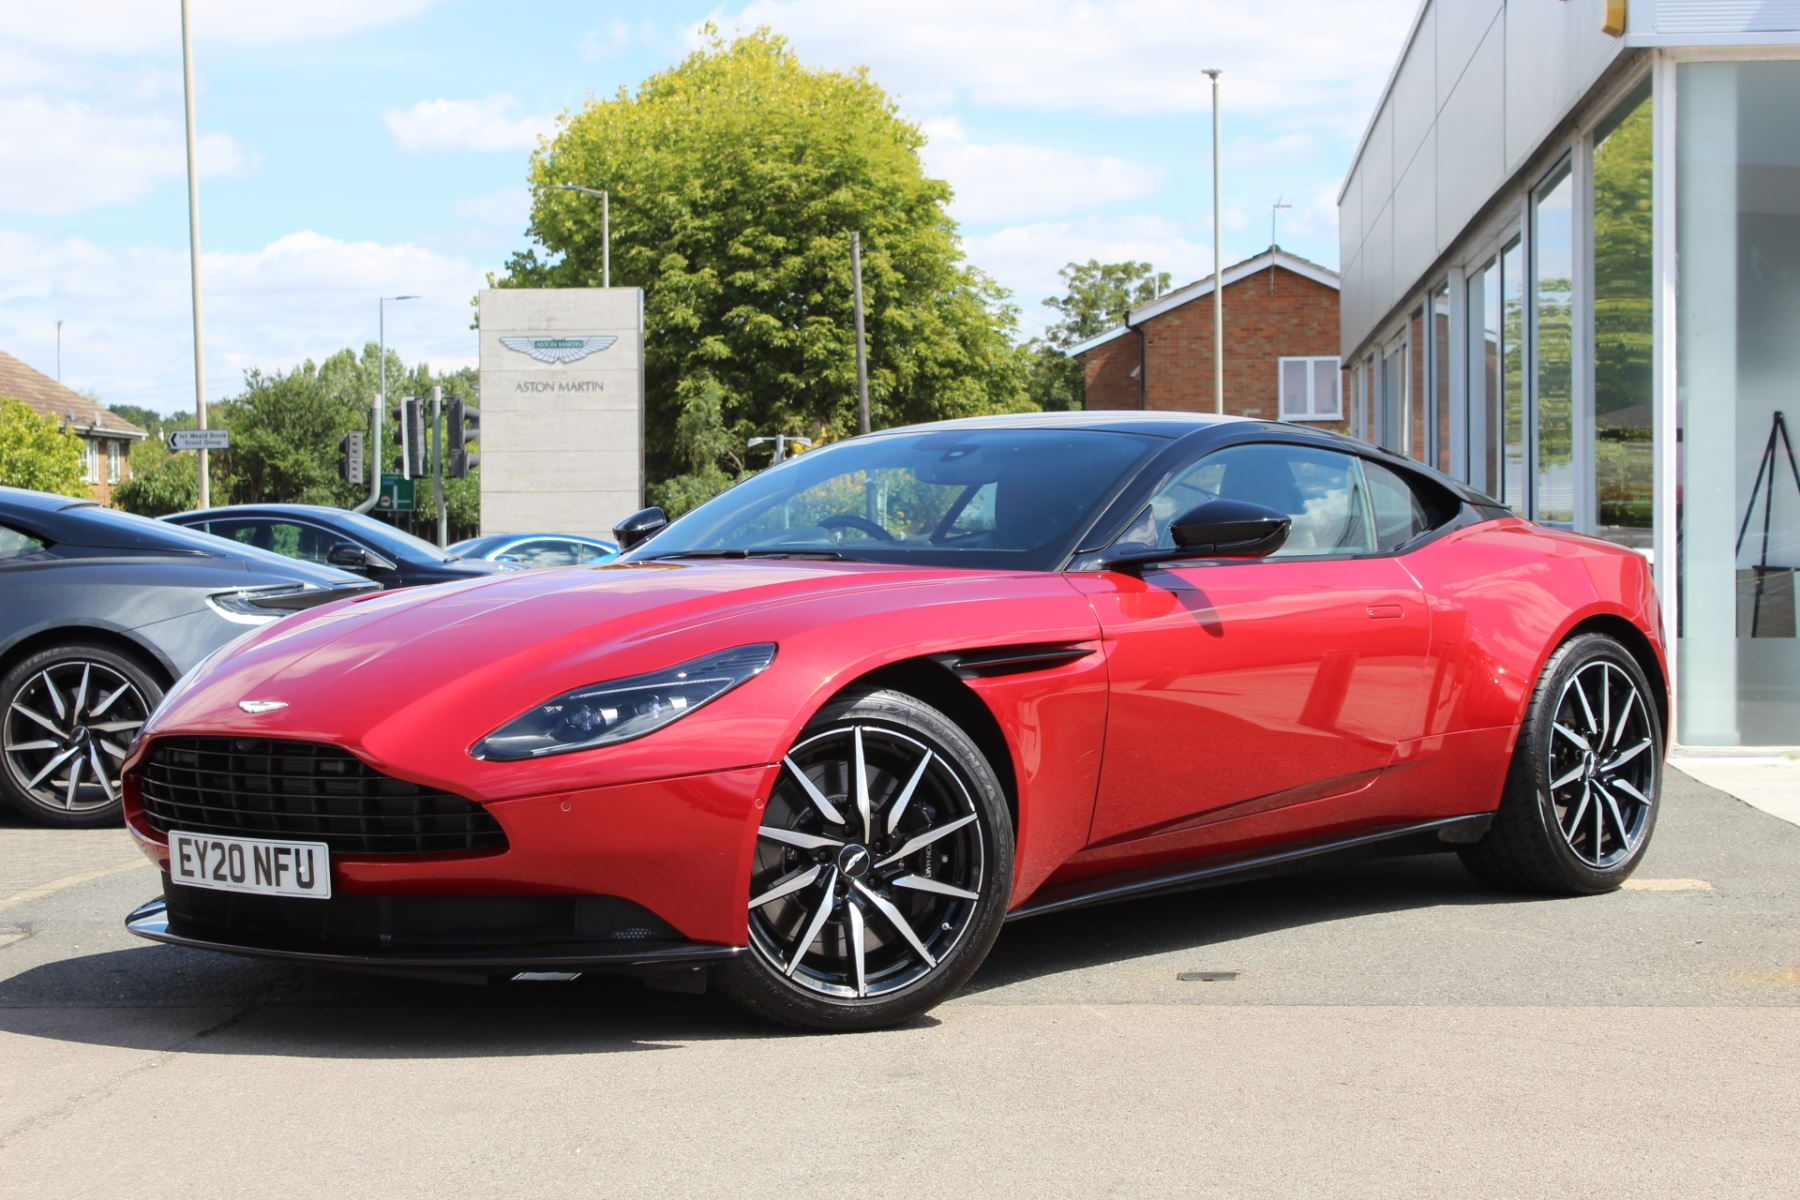 Aston Martin DB11 V8 2dr Touchtronic 4.0 Automatic Coupe (2020)